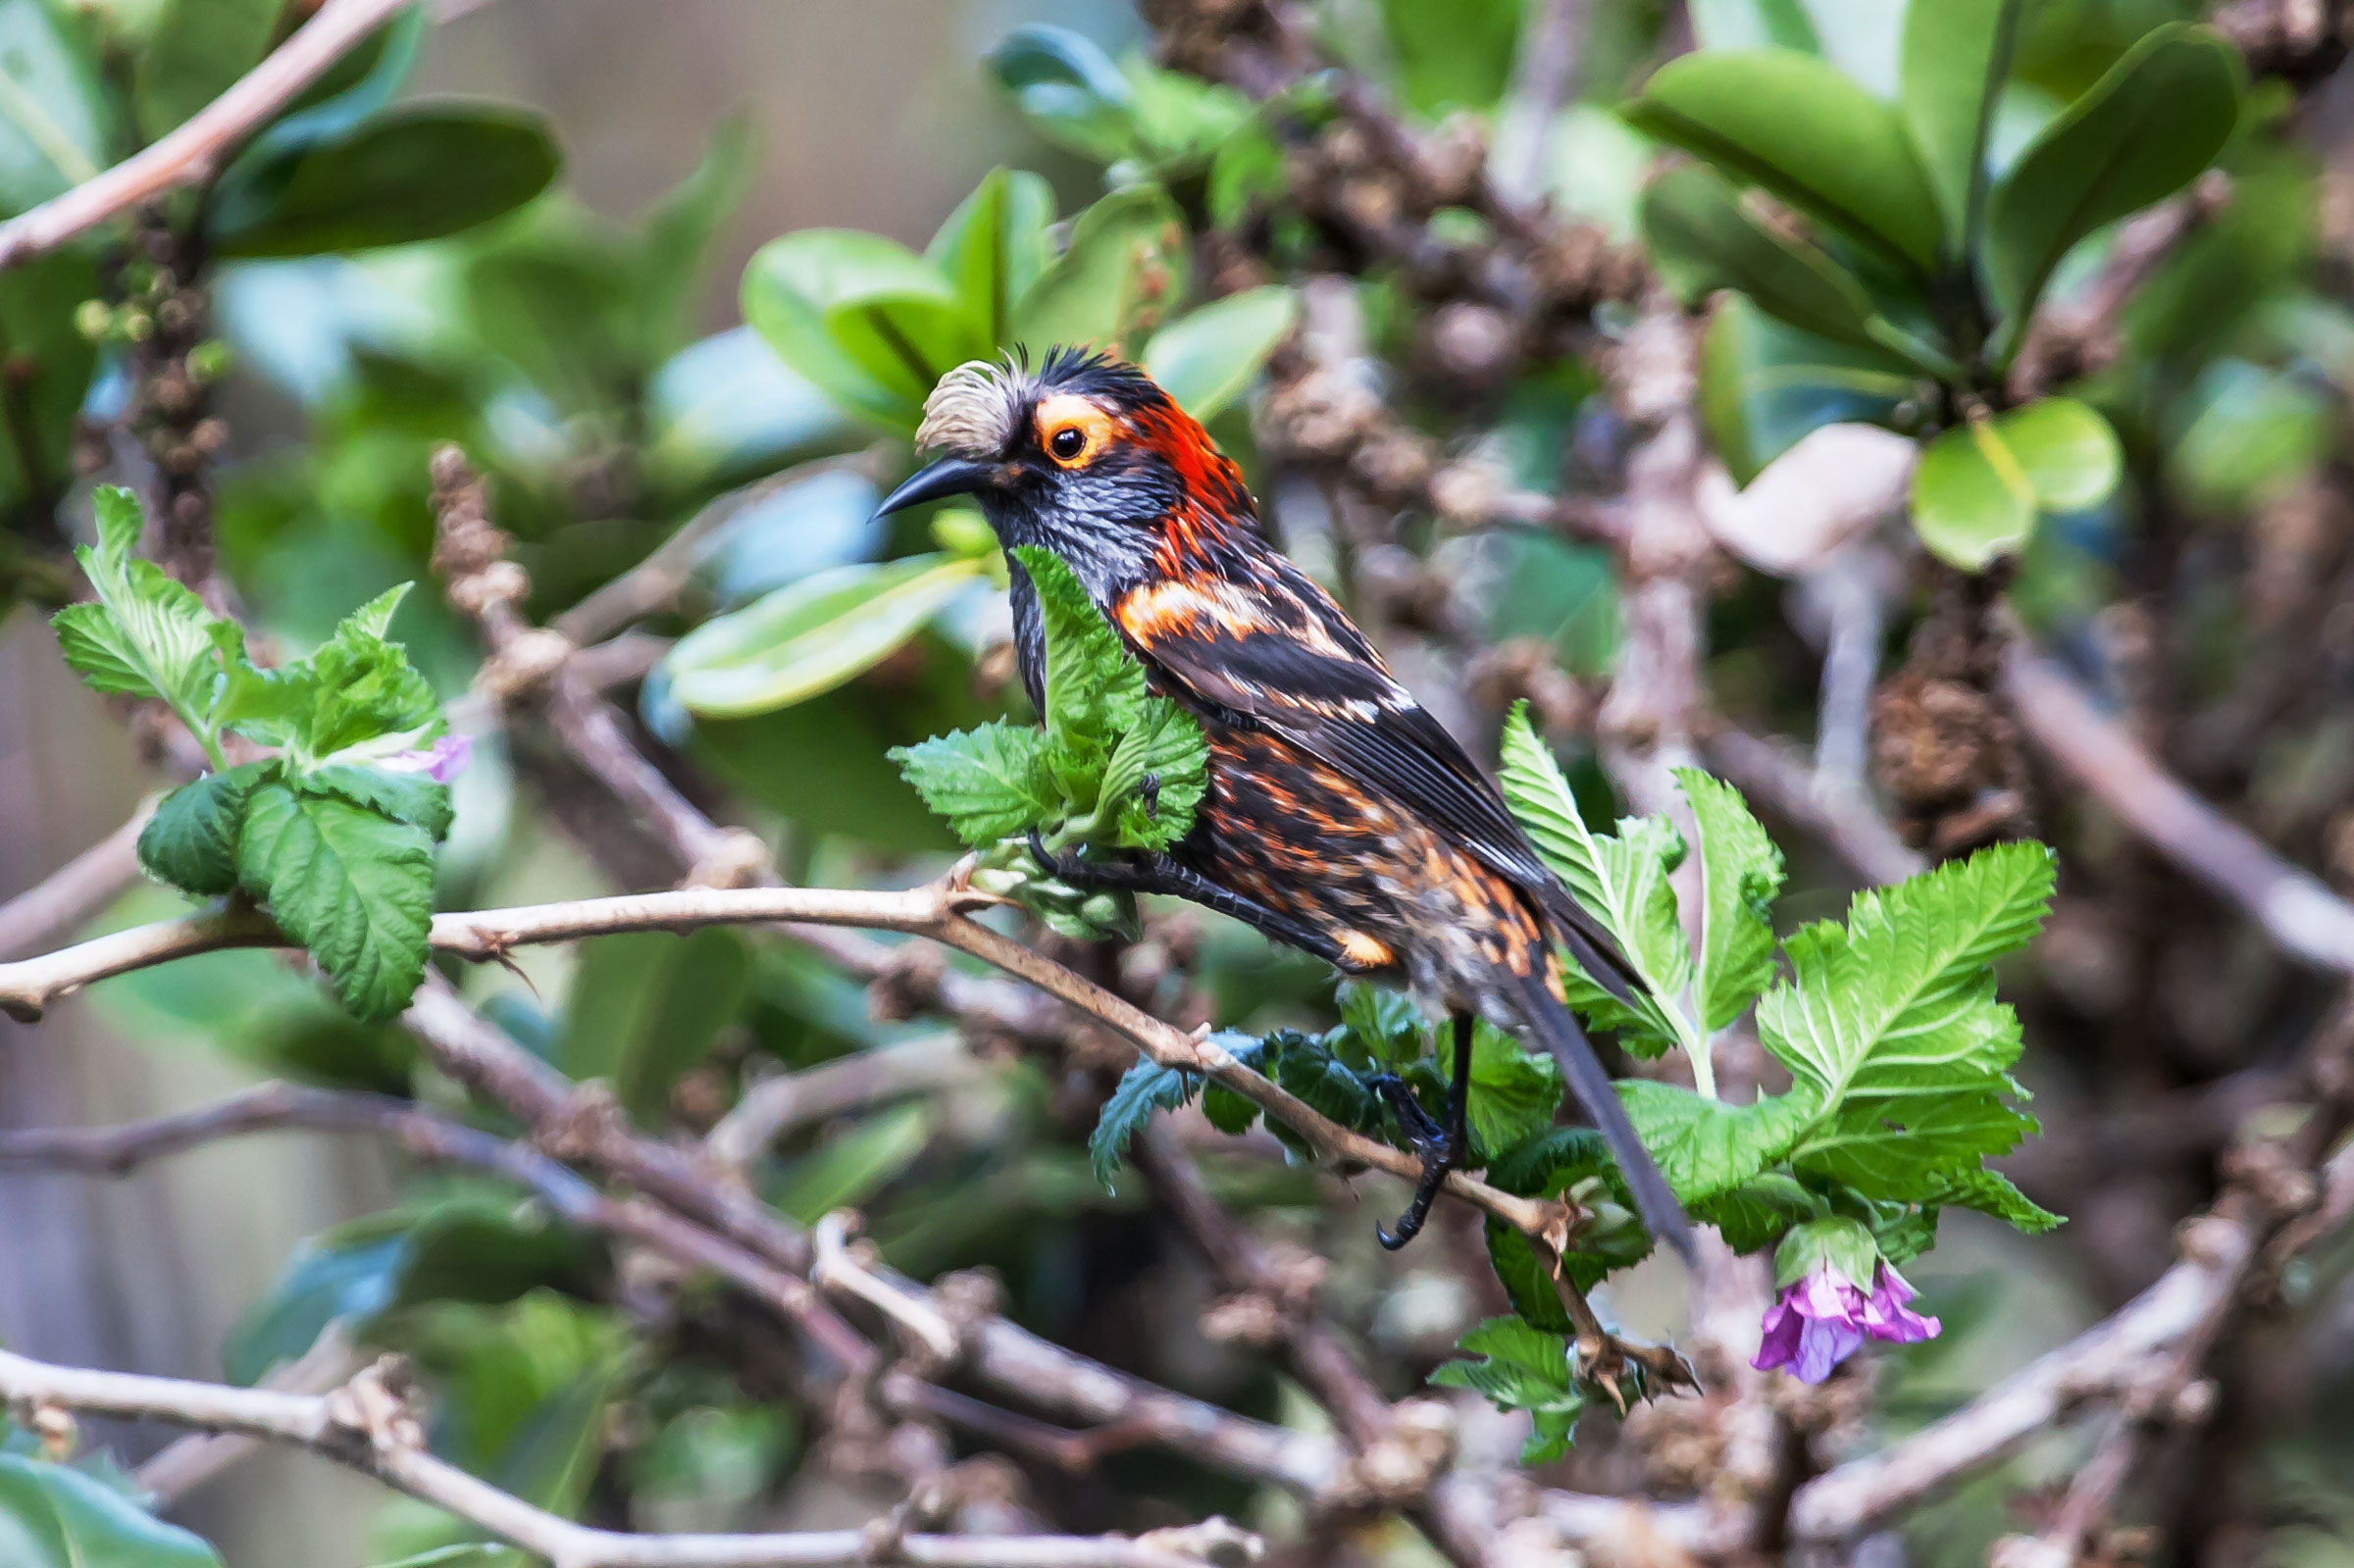 The critically endangered Crested Honeycreeper, locally known as the Akohekohe, is projected to lose more than 90 percent of its range. Robby Kohley